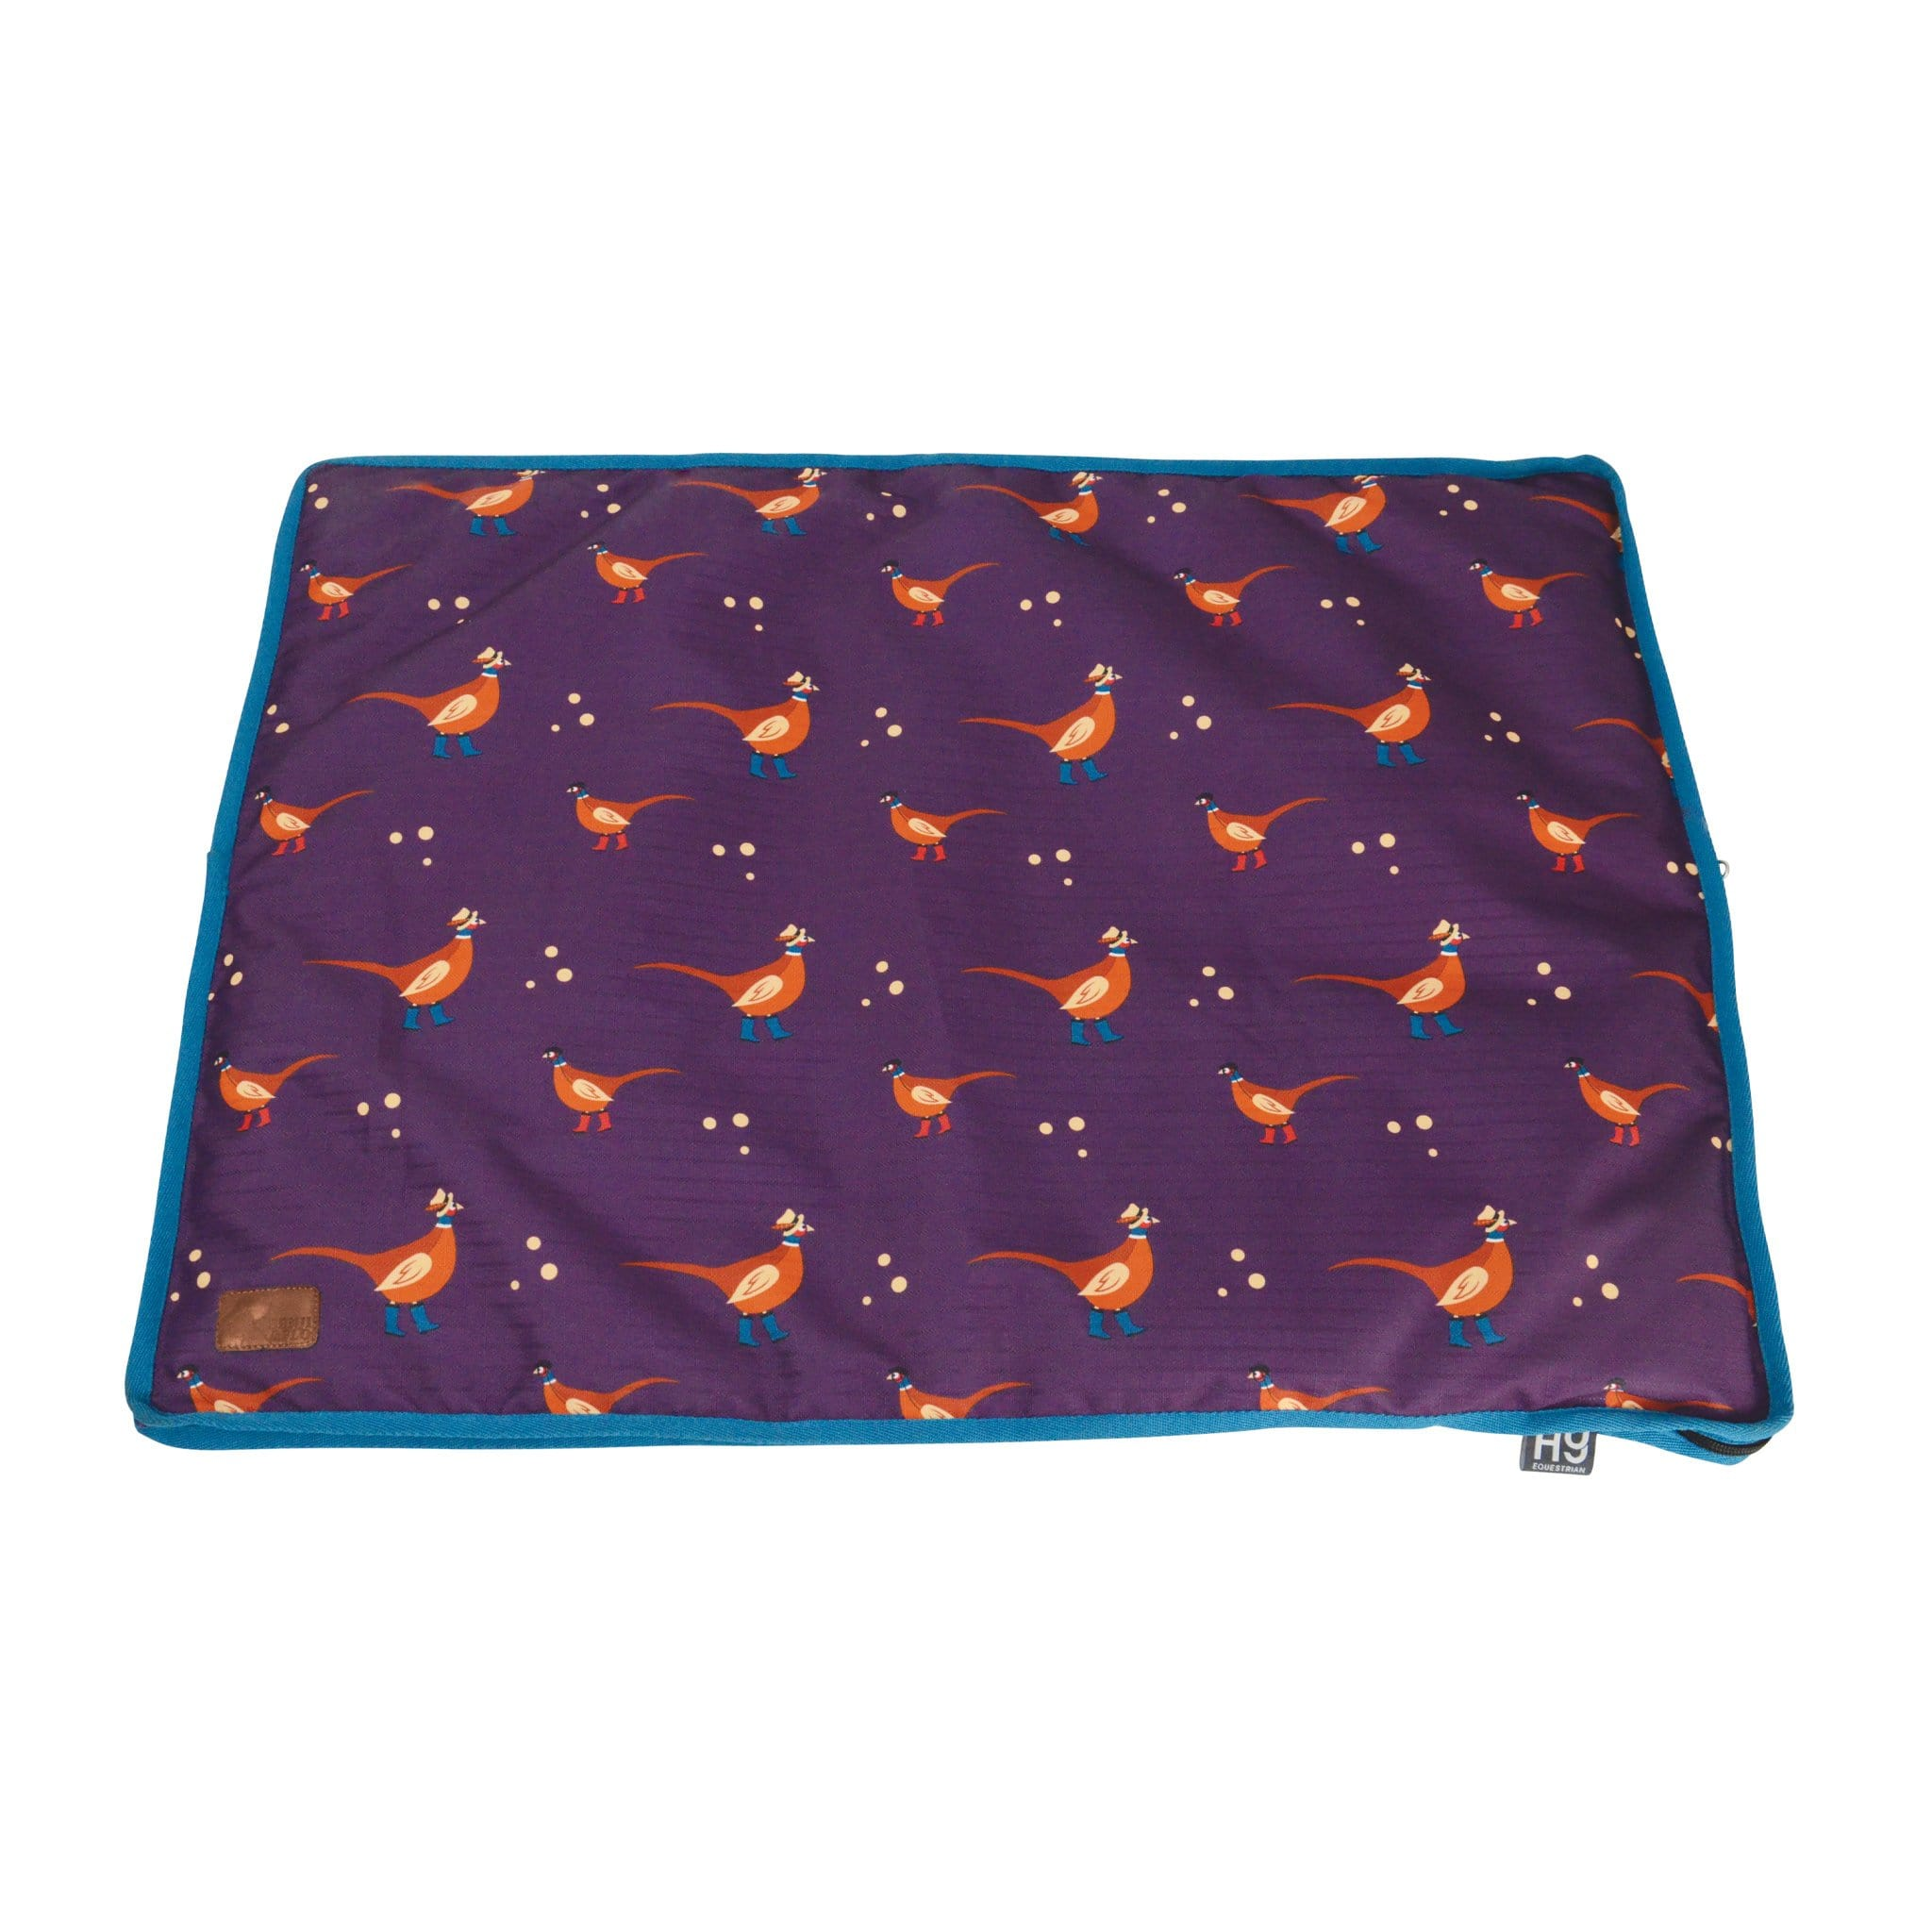 Hy Equestrian Patrick the Pheasant Dog Bed Plum 28447